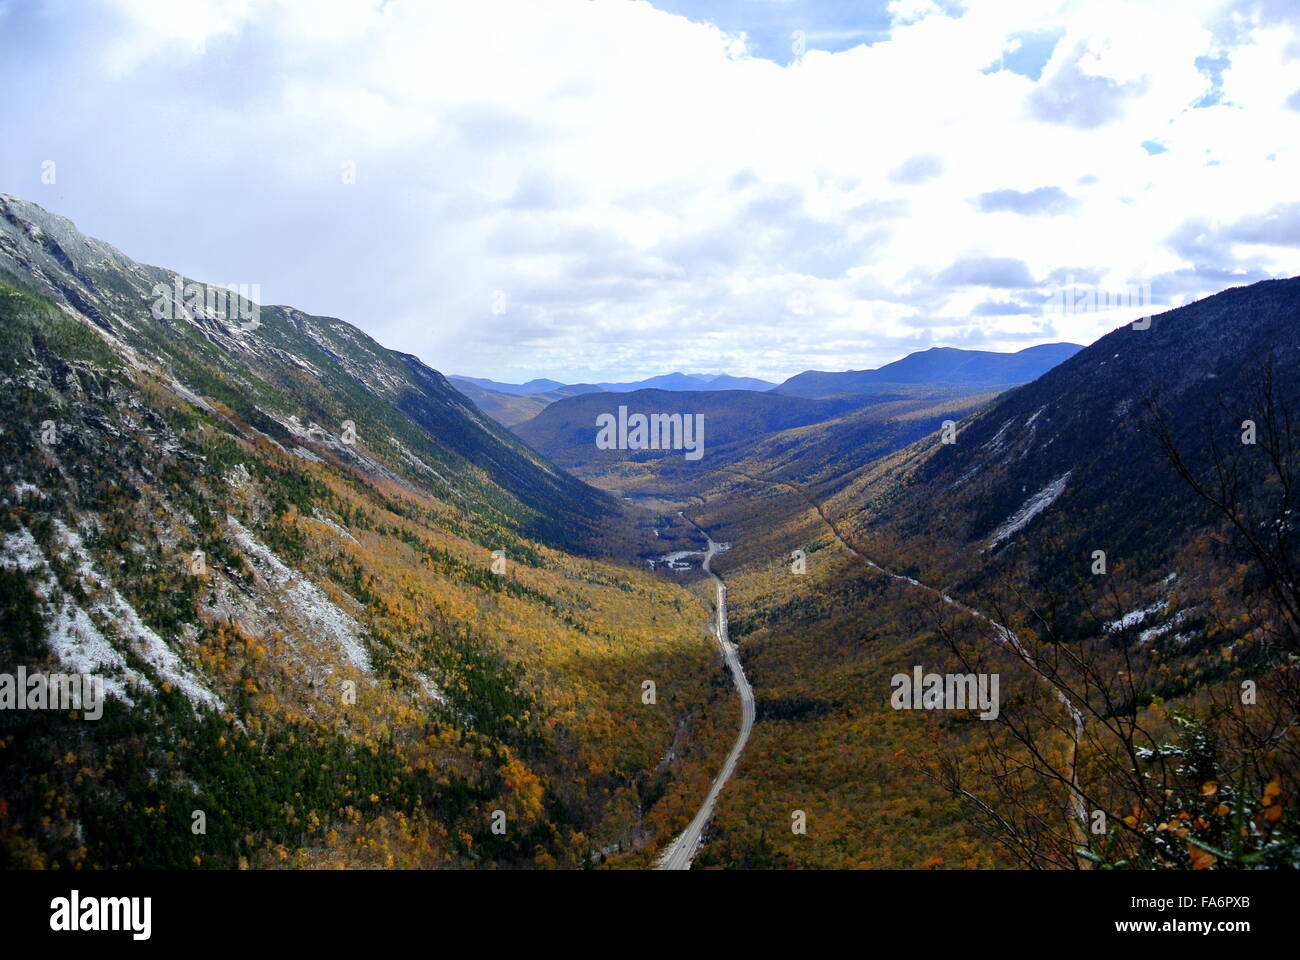 View from above in Crawford Notch State Park, New Hampshire Stock Photo